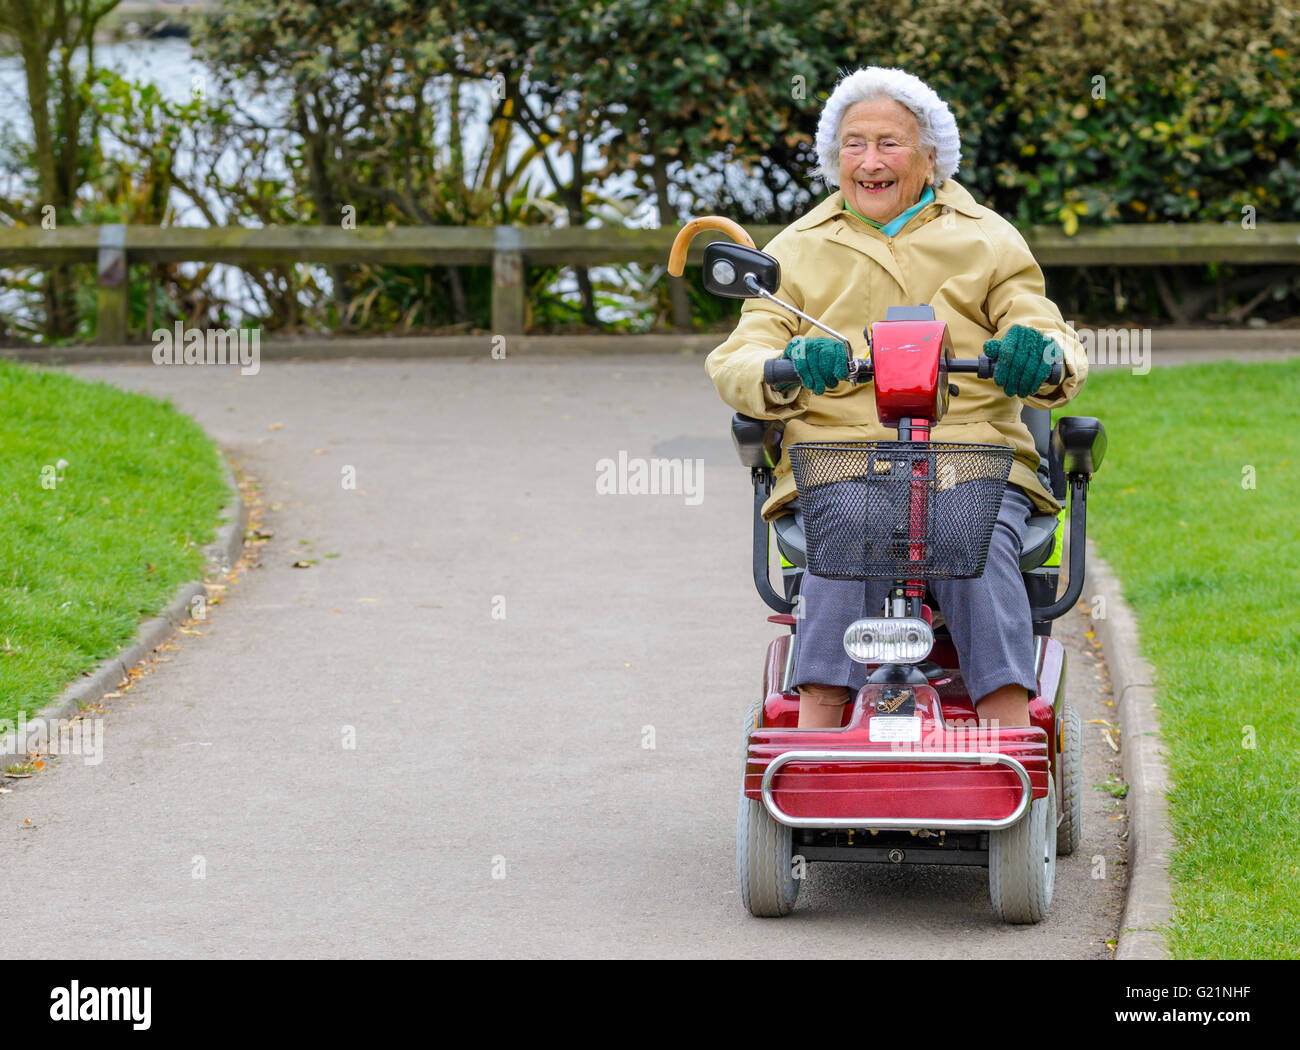 happy-elderly-lady-riding-a-mobility-scooter-in-a-park-G21NHF.jpg